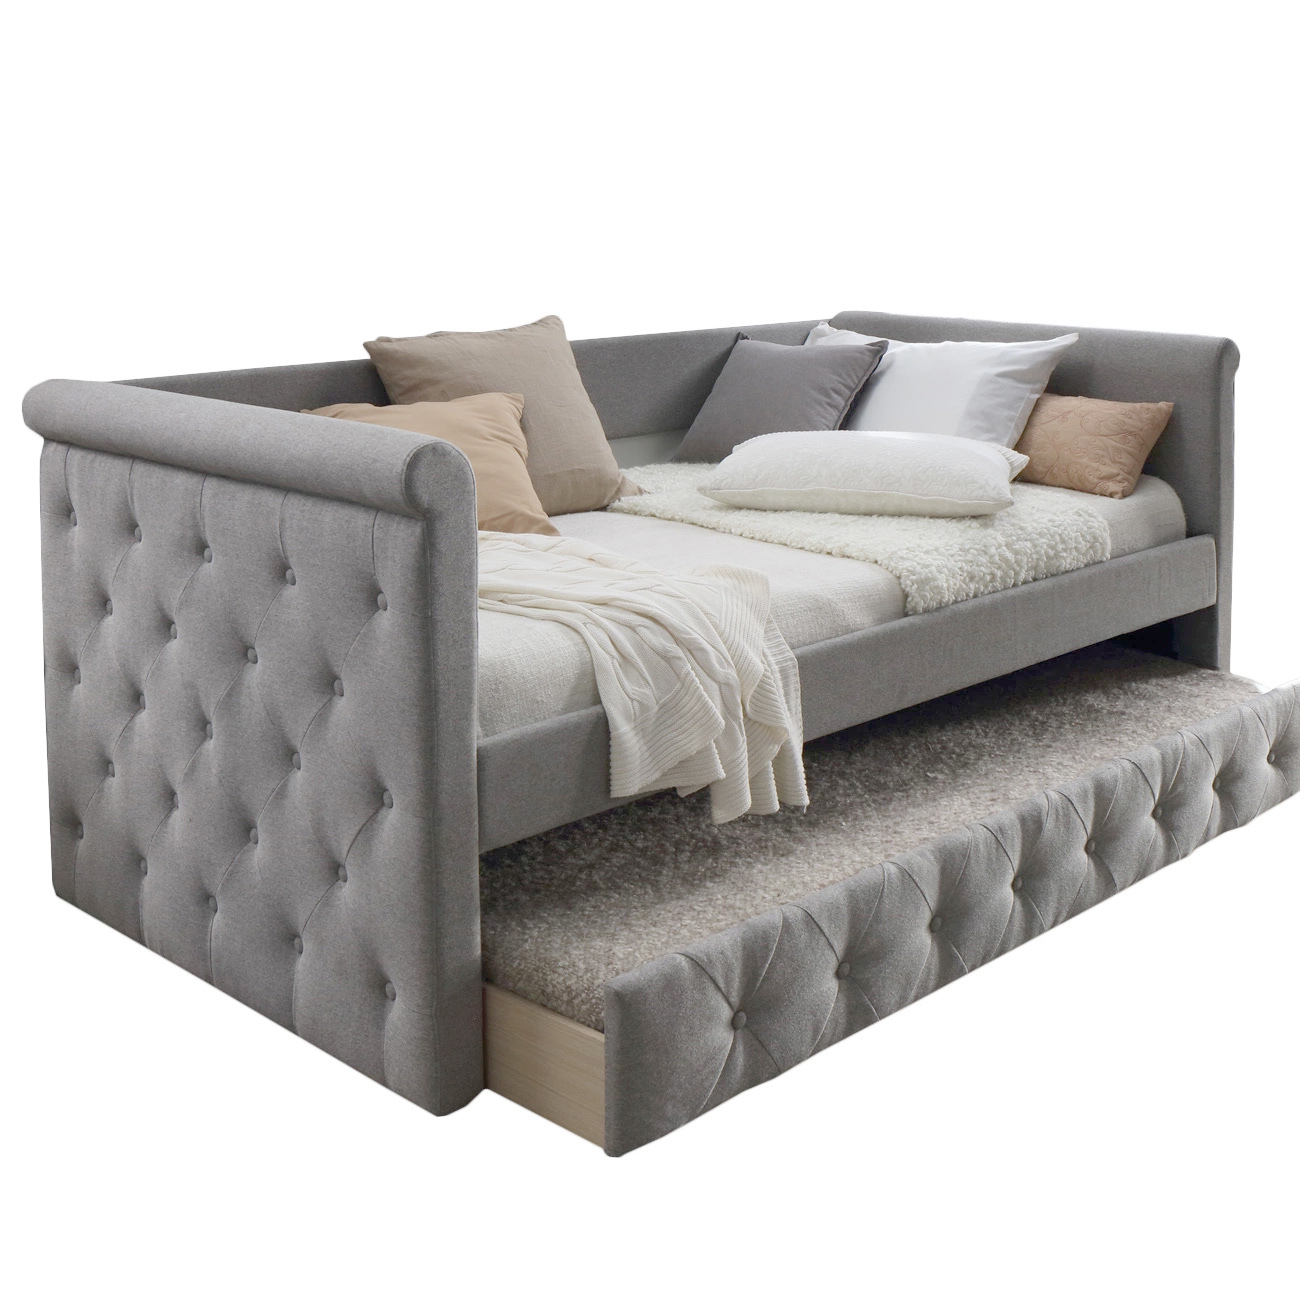 Enjoyable Details About New Arles Single Sofa Daybed With Trundle Vic Furniture Sofa Beds Inzonedesignstudio Interior Chair Design Inzonedesignstudiocom